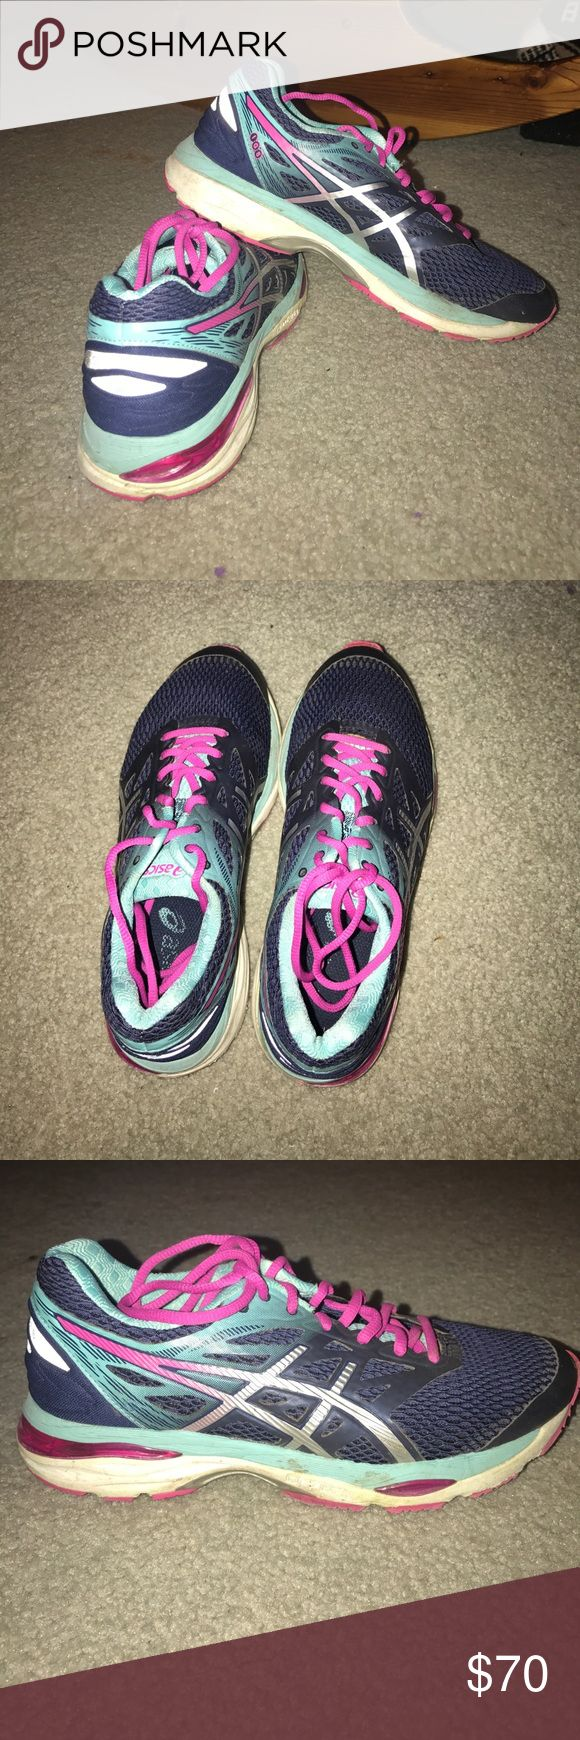 Asics size 7 tennis shoe Asics size 7 shoe, only worn a hand full of times, great condition, very negotiable on the price so please offer! Asics Shoes Athletic Shoes